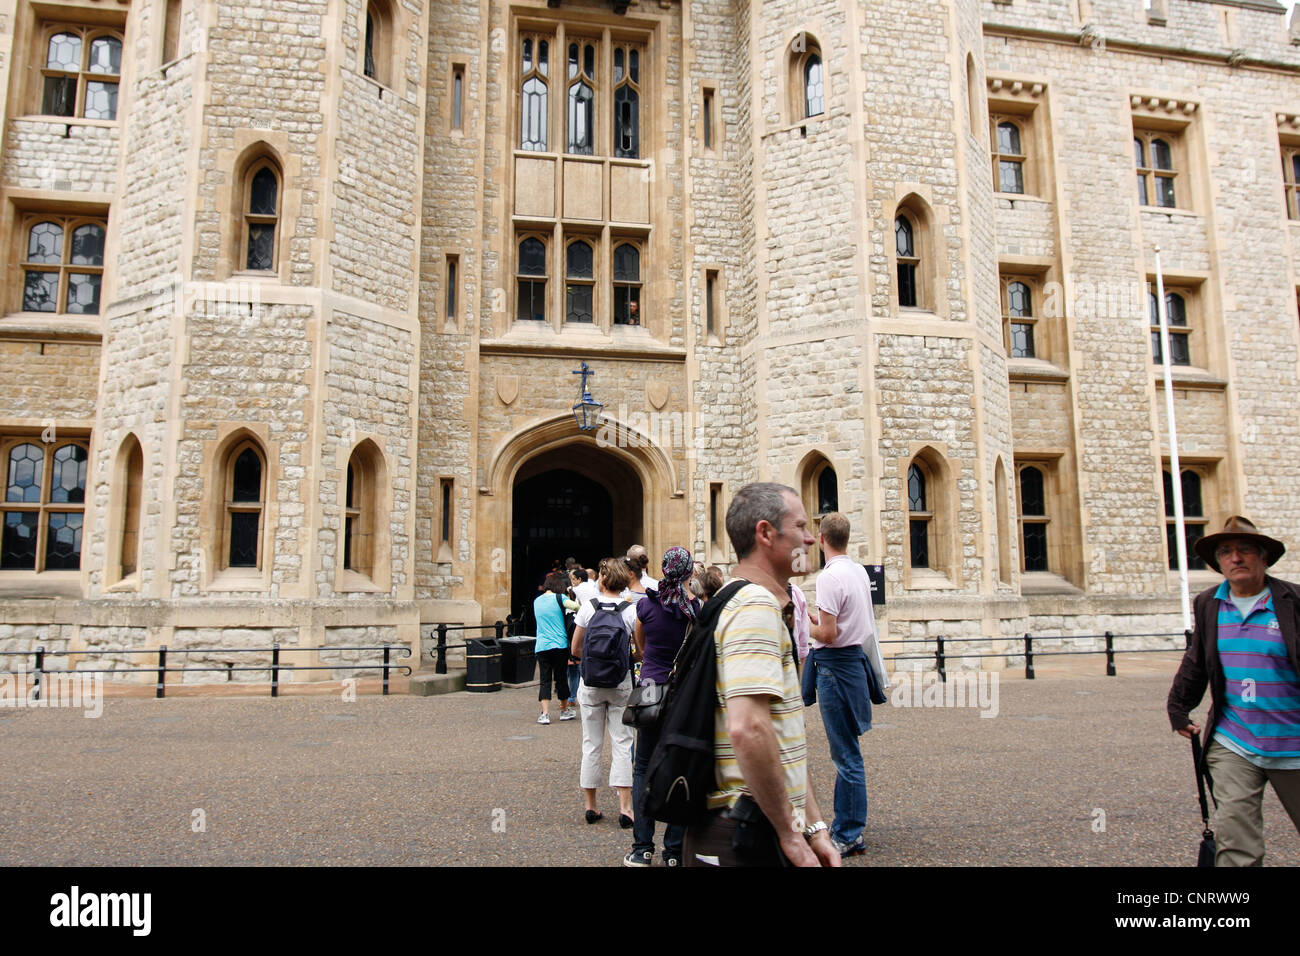 Tower of London - Jewel House - home of the Crown Jewels - Stock Image